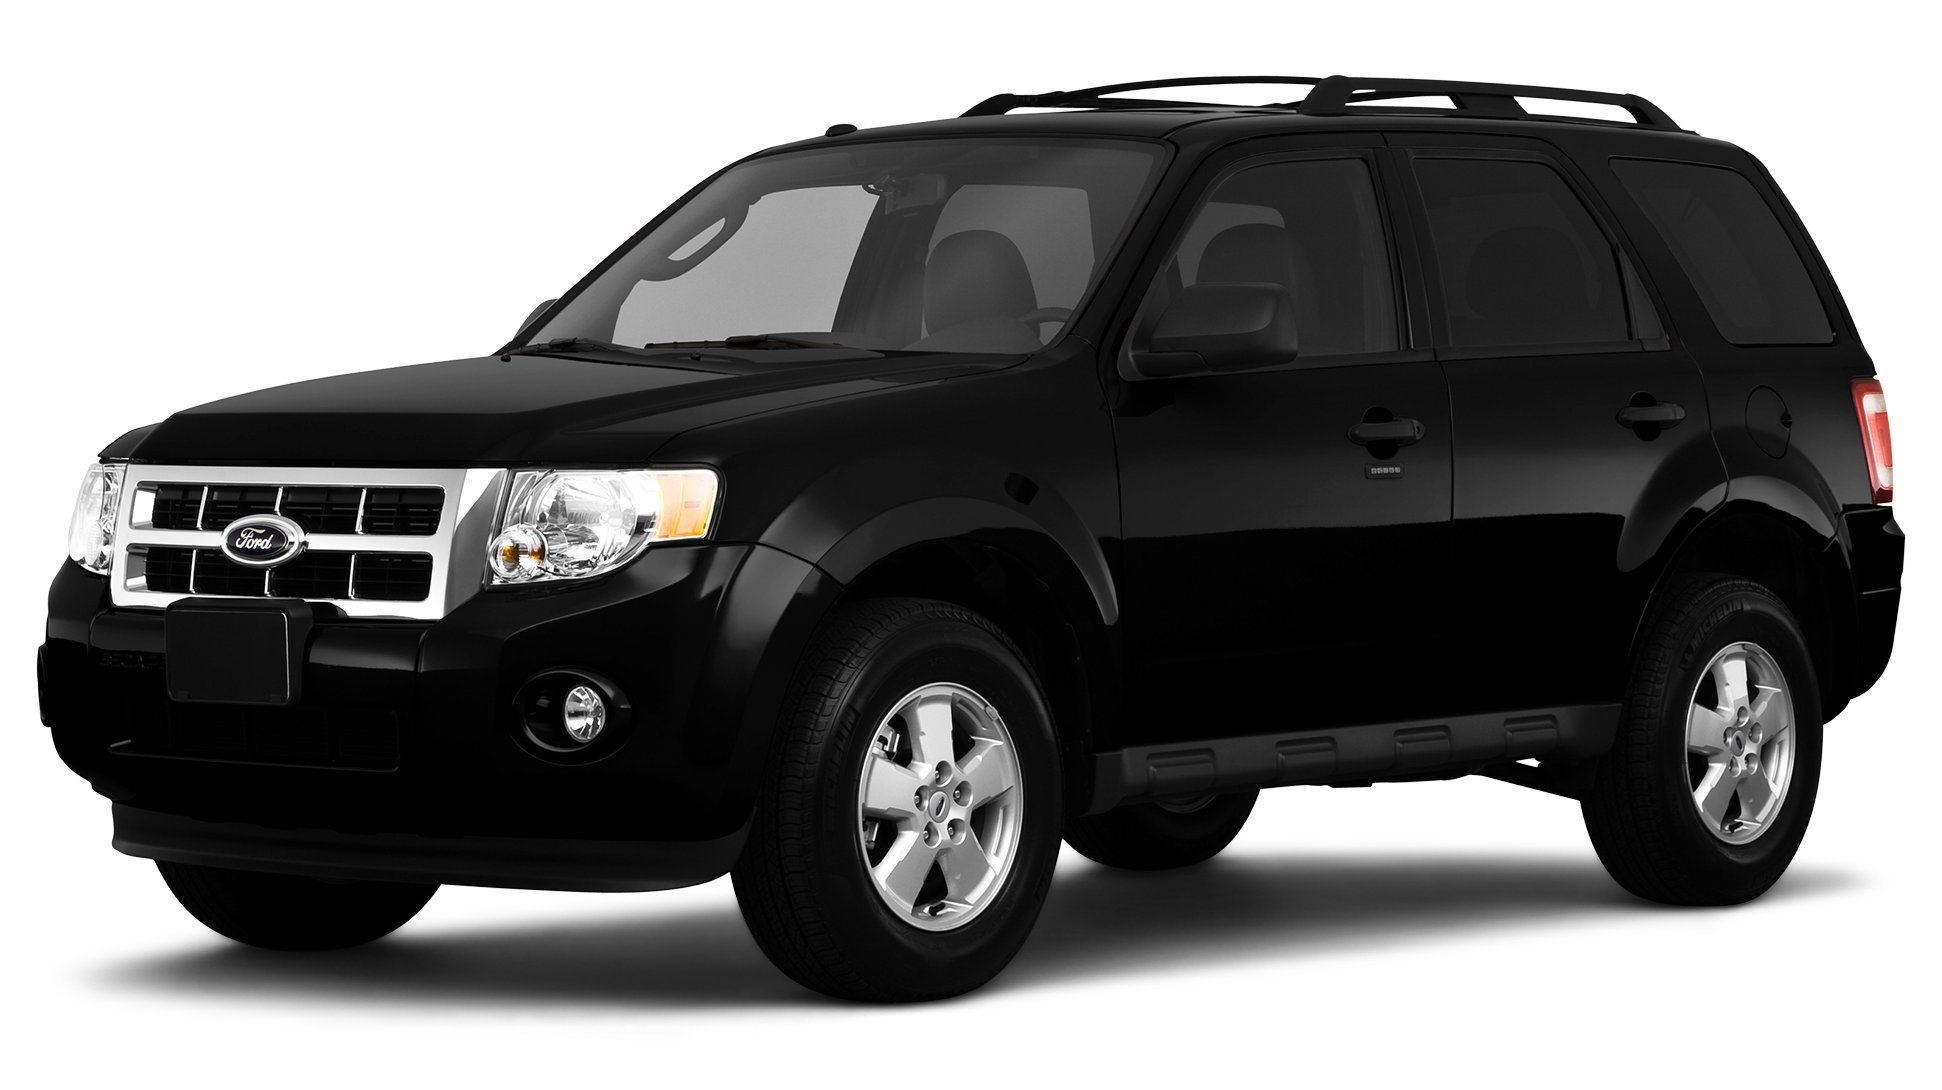 ... 2010 Ford Escape XLT, 4-Wheel Drive 4-Door. 2010 Toyota FJ Cruiser ...